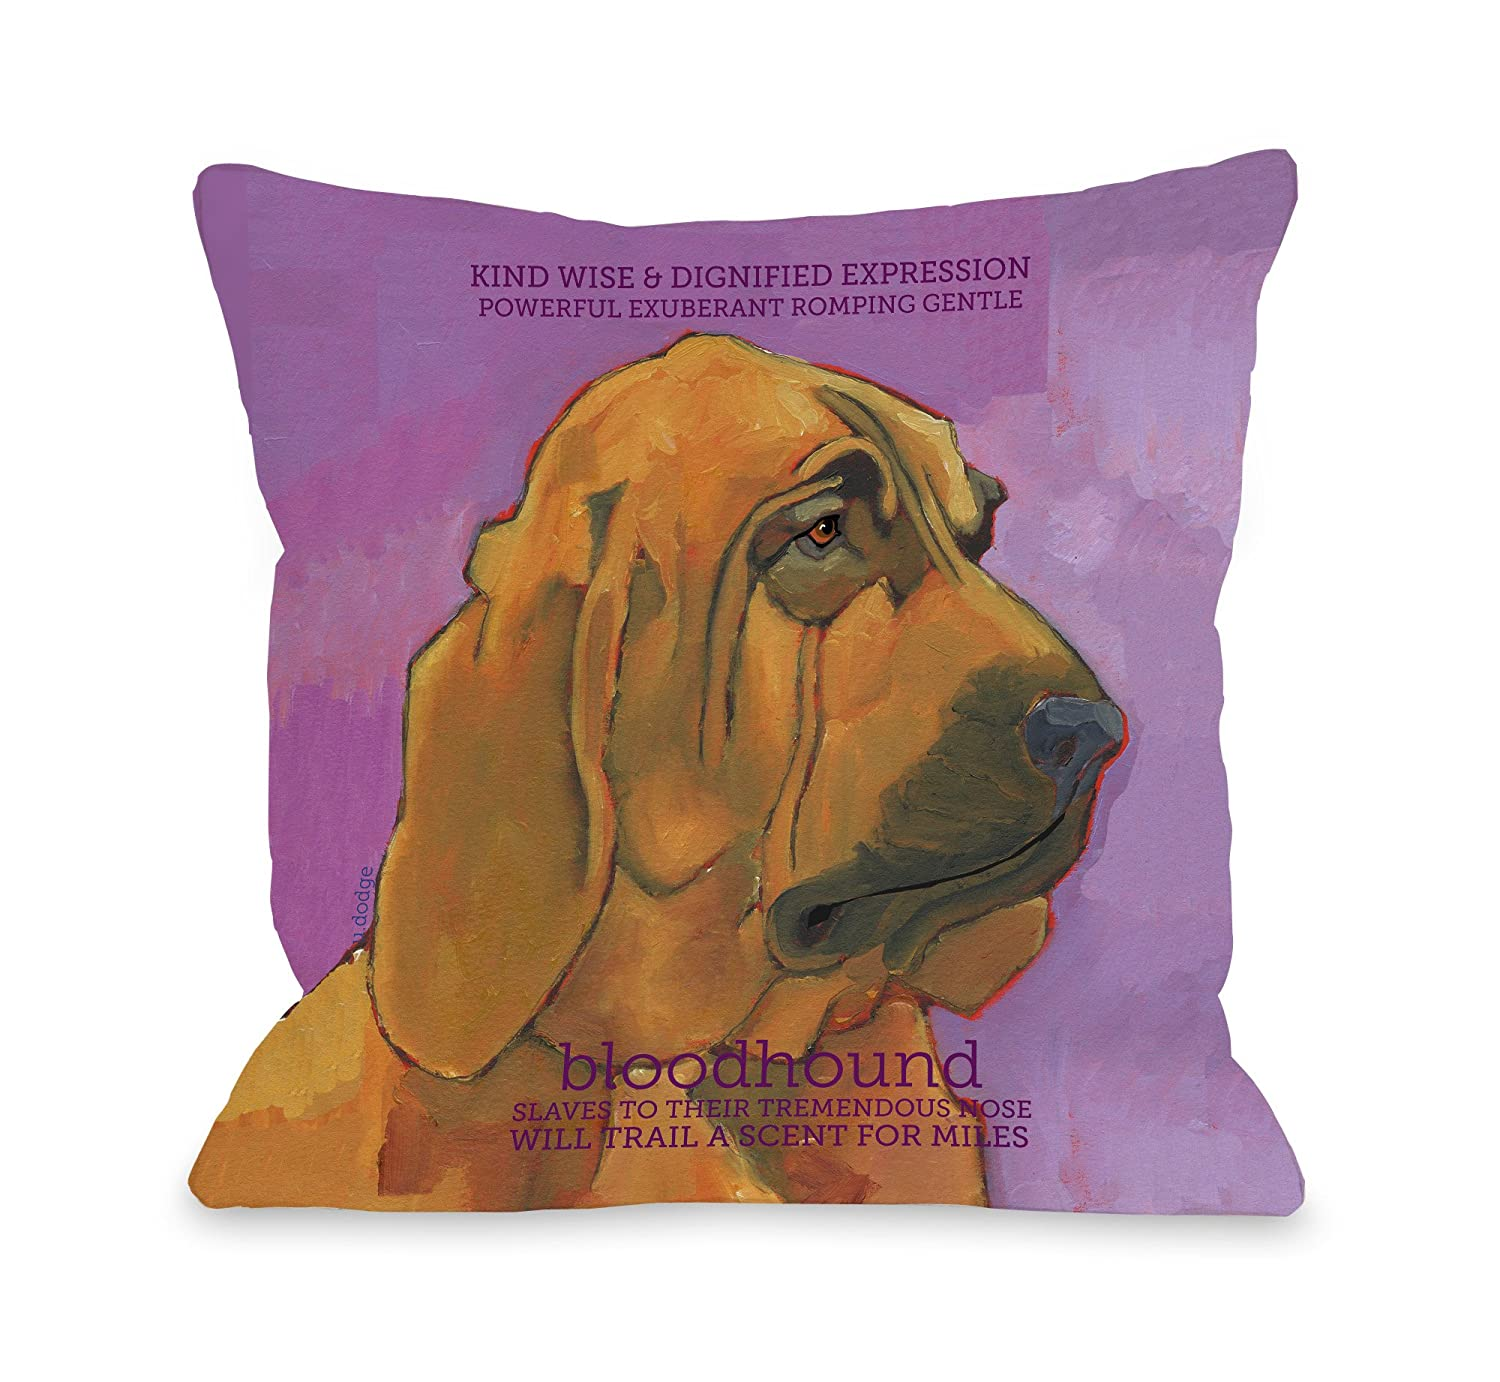 One Bella Casa Bloodhound 1 Pillow 16 by 16-inch